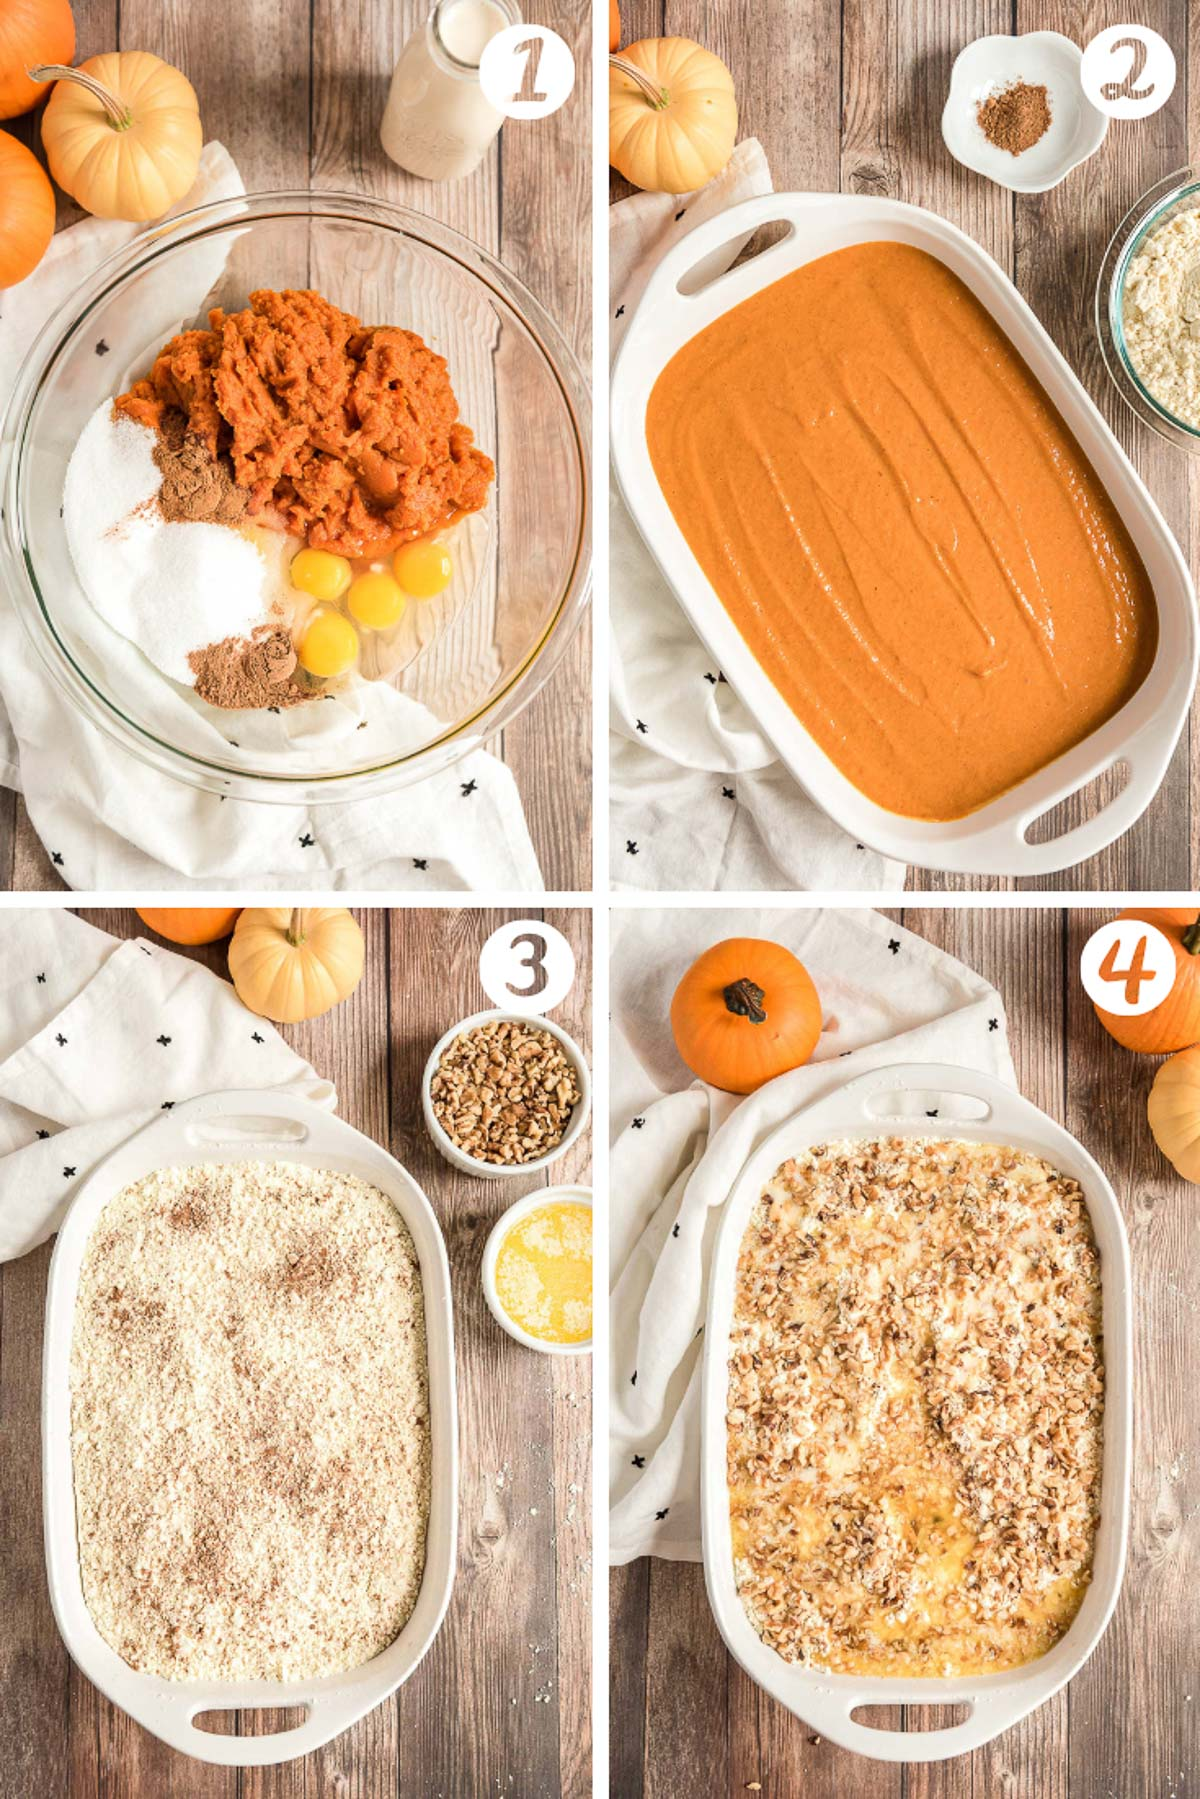 step-by-step photos of how to make pumpkin dump cake.